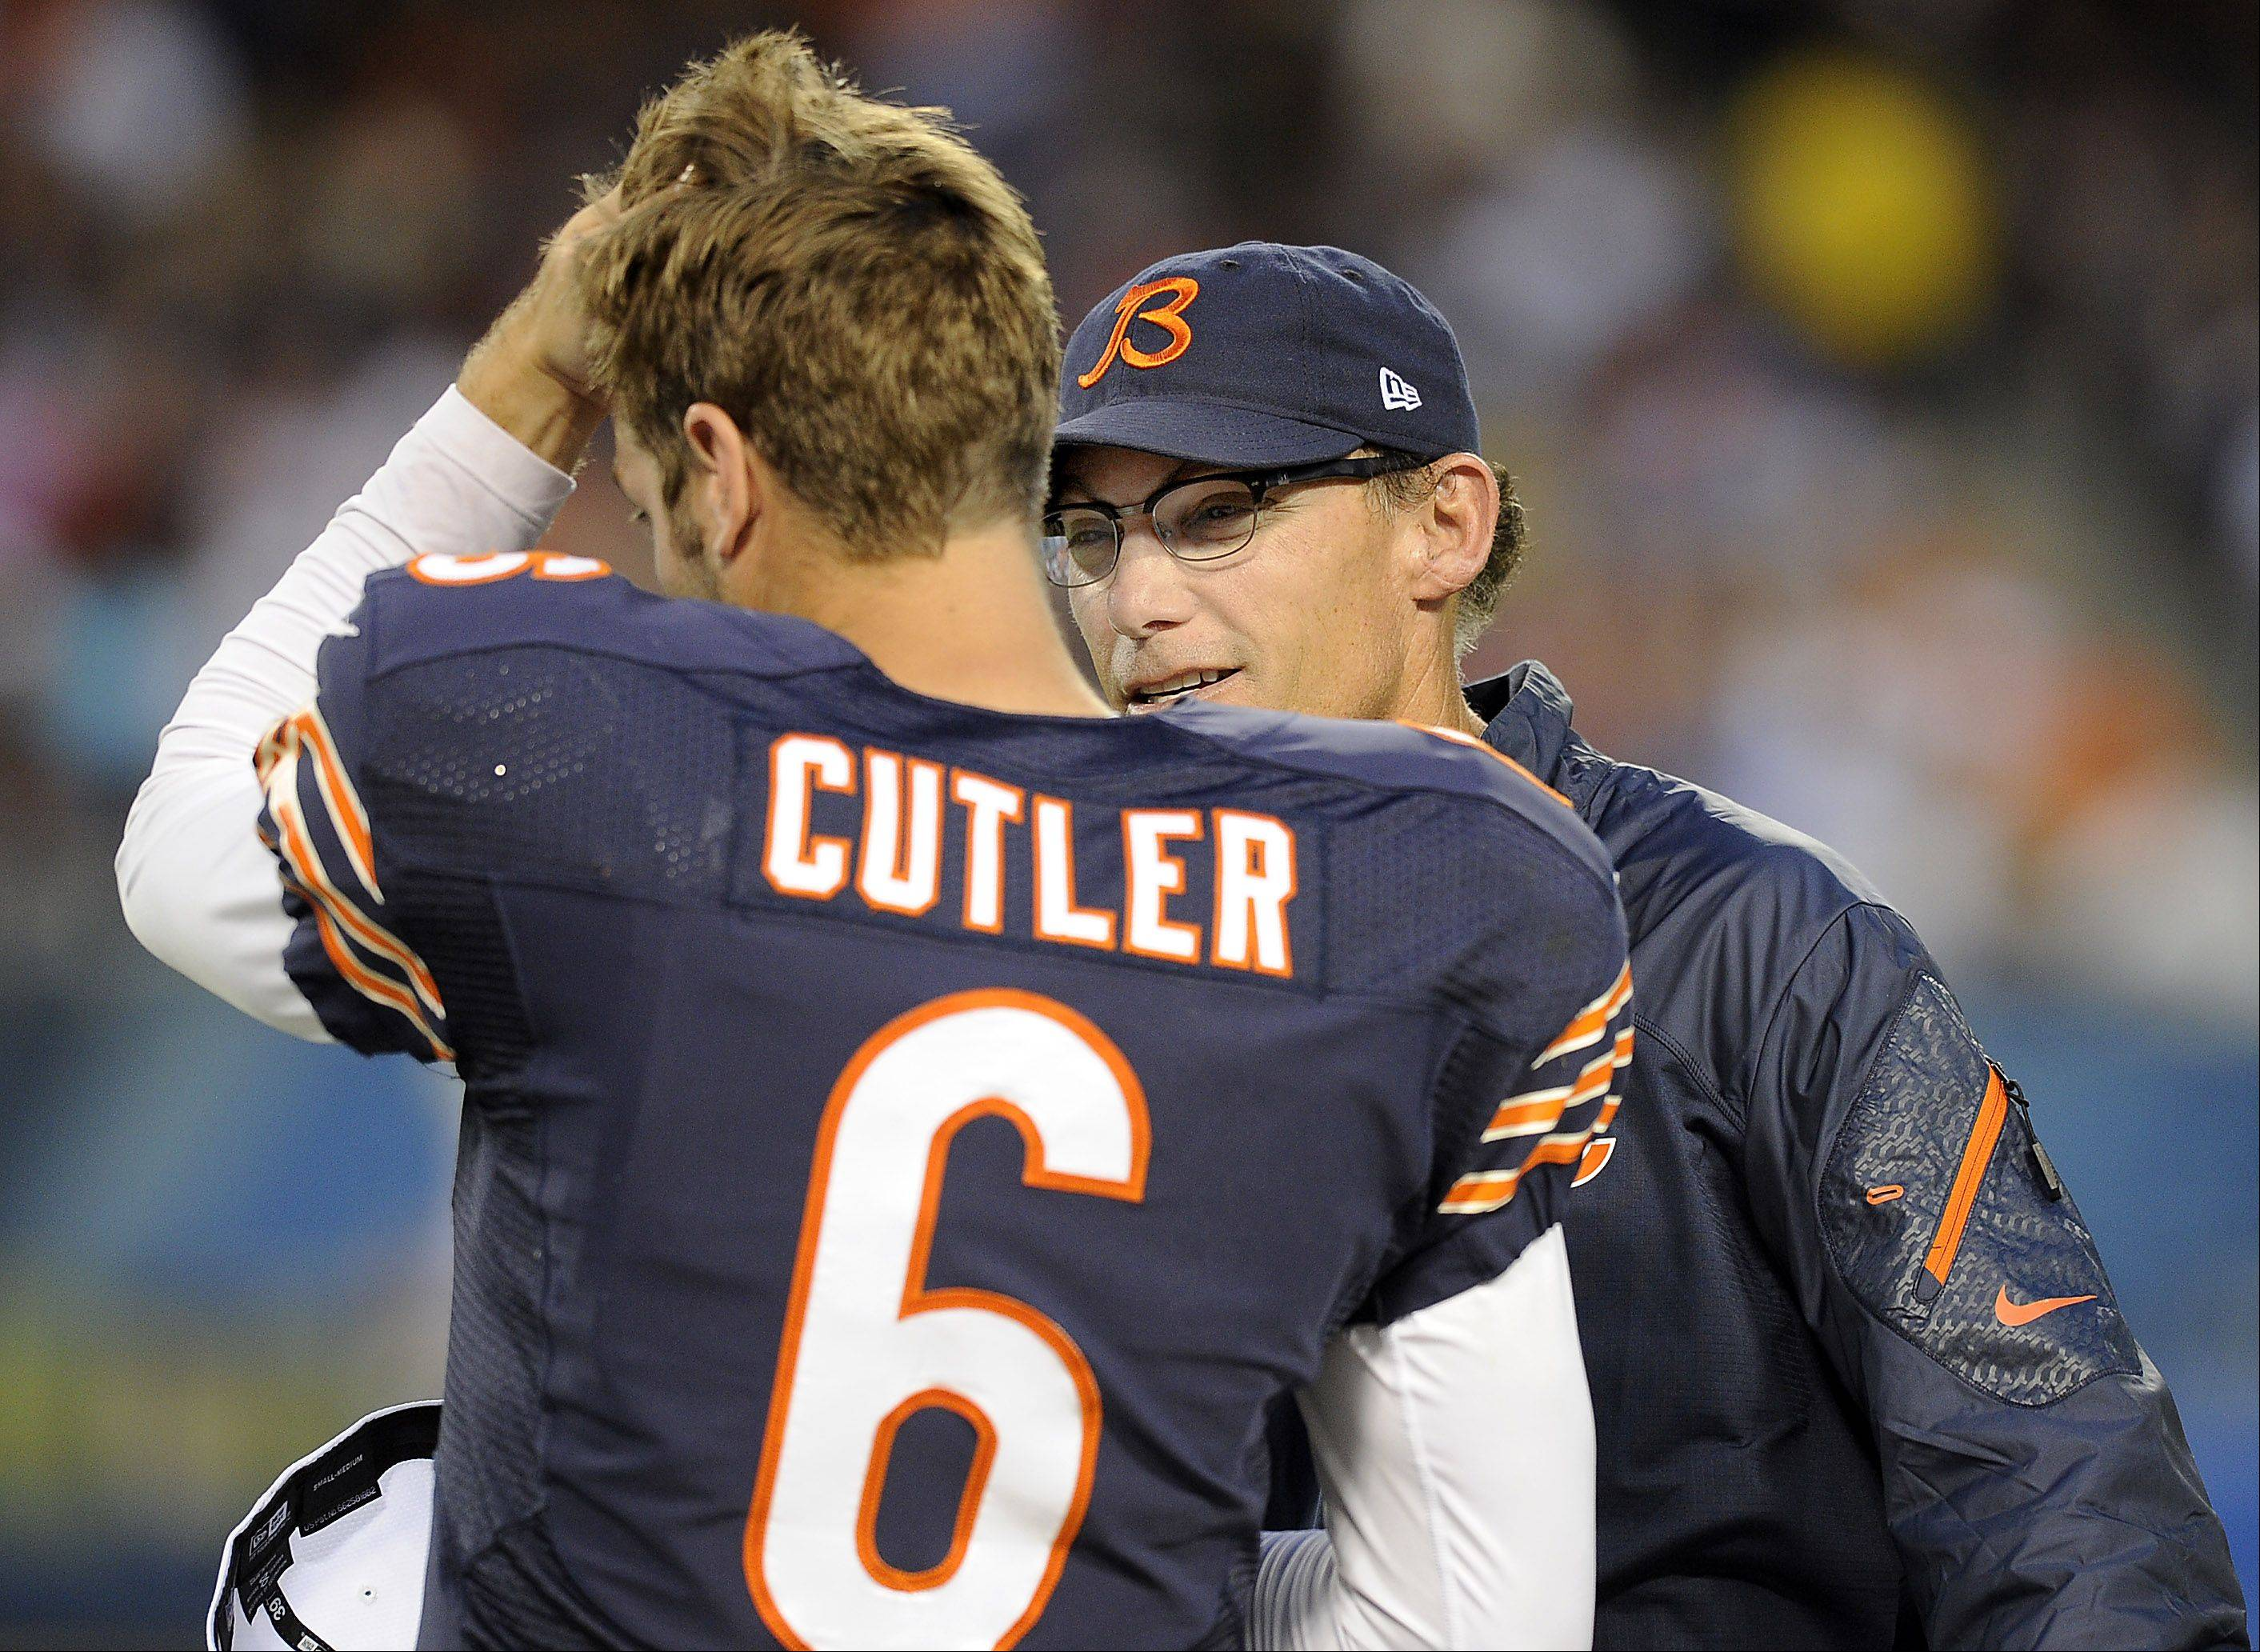 Bears head coach Marc Trestman hasn't wavered in his confidence with quarterback Jay Cutler.